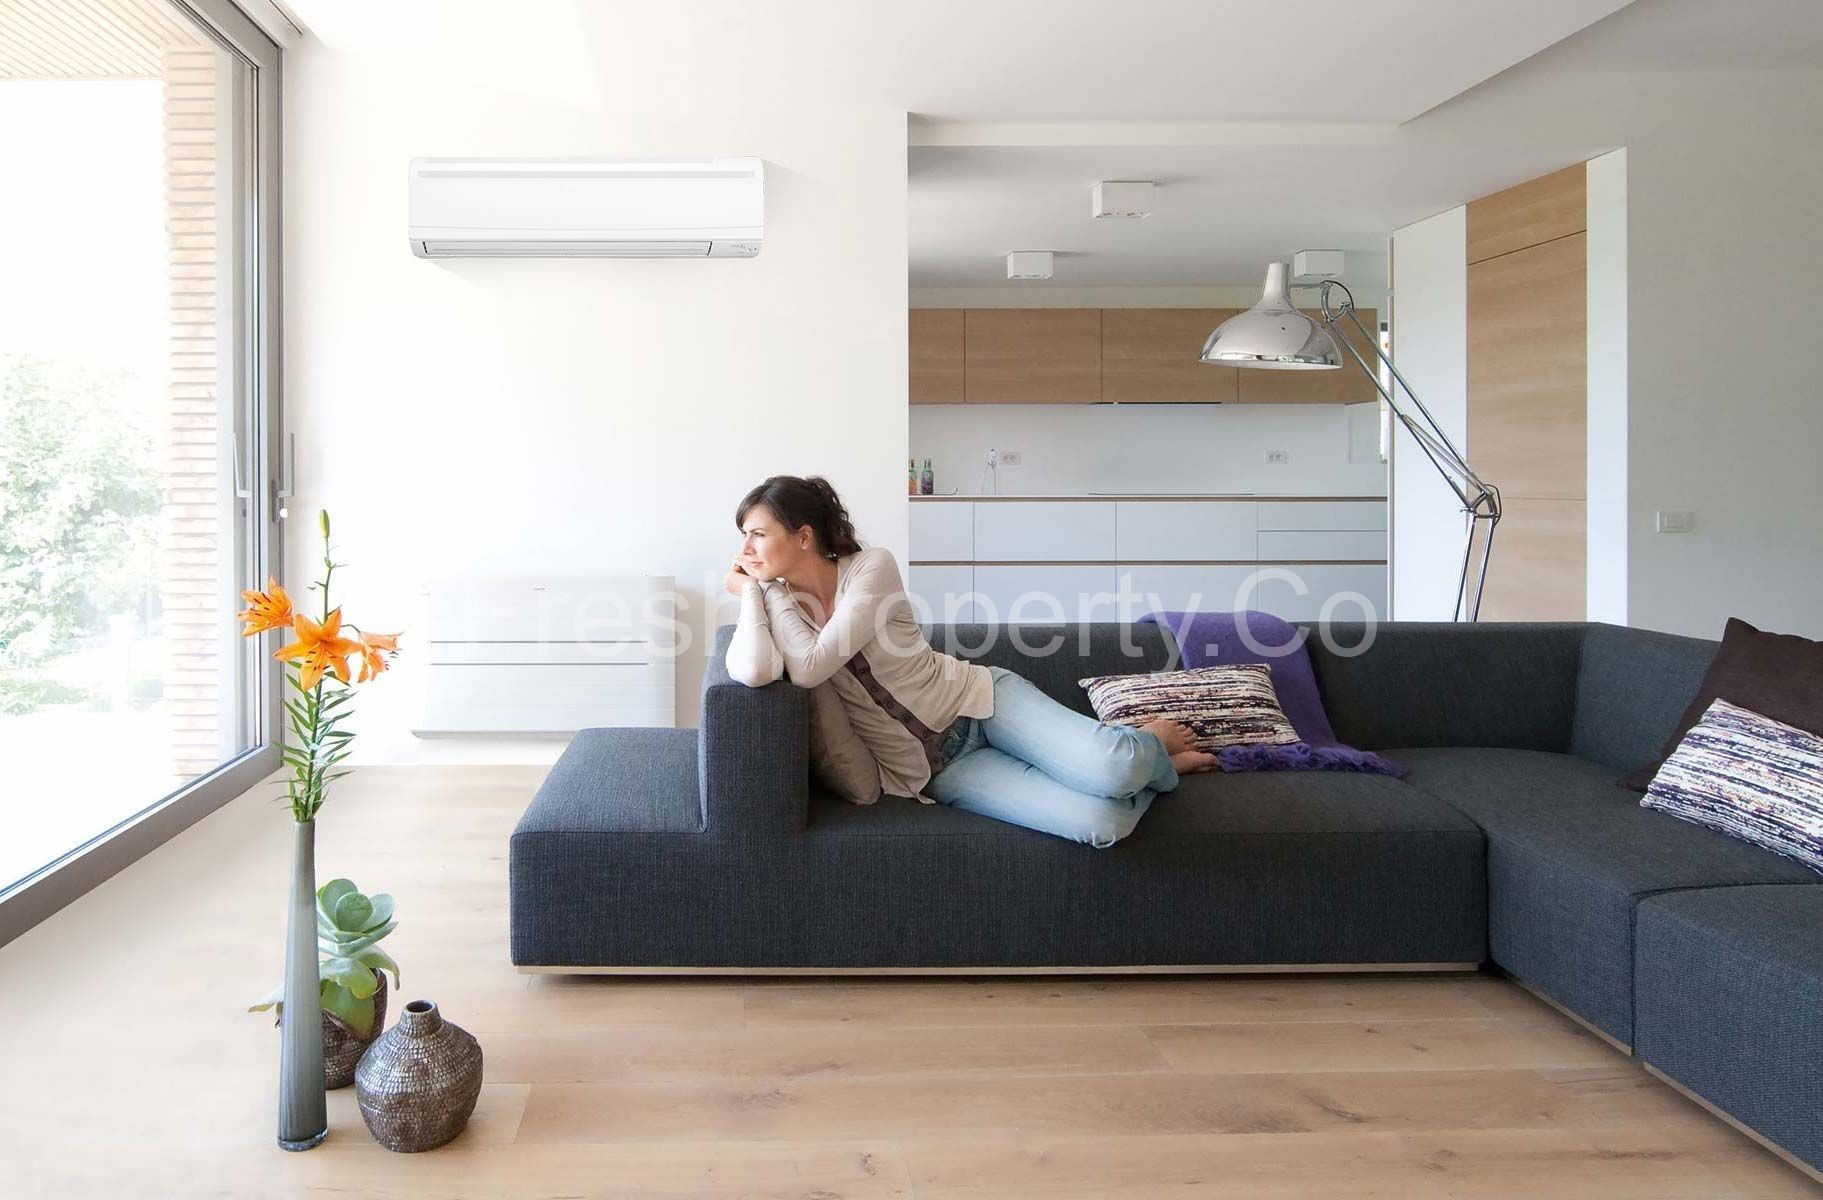 8 Facts About Air-conditioners You Likely Didn't Know